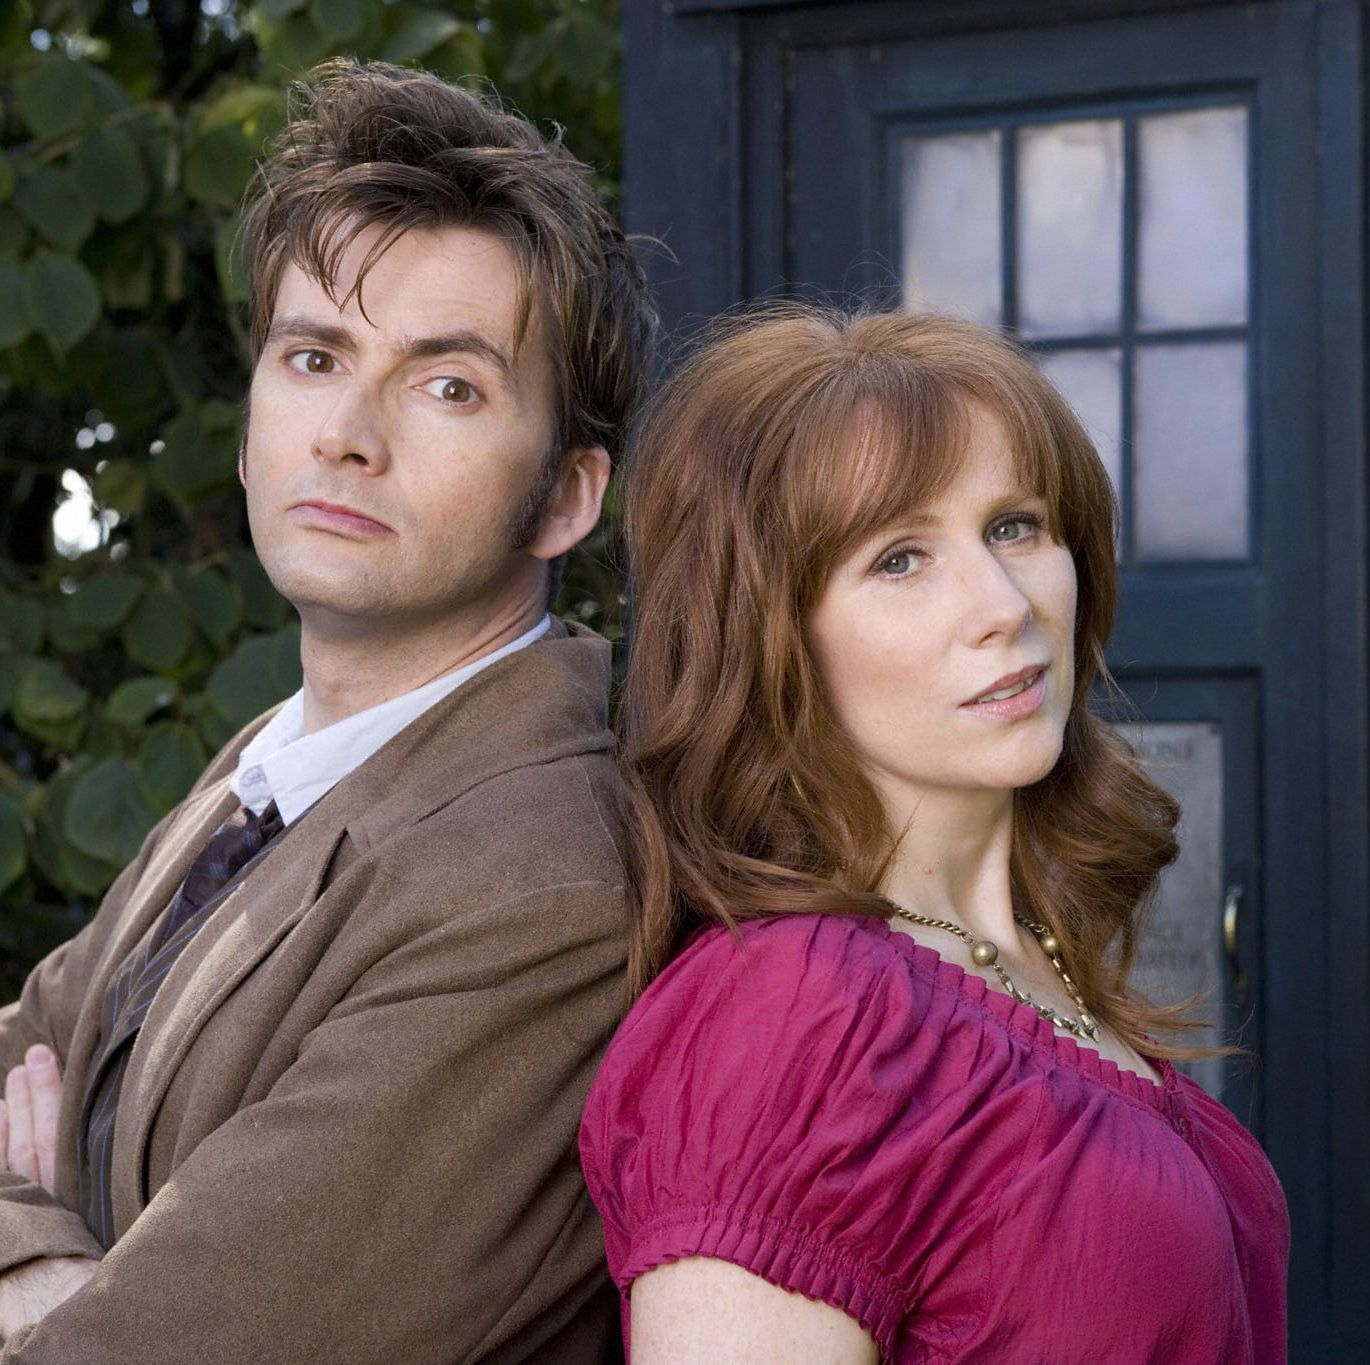 Doctor Who series 4 with David Tennant getting Blu-ray Steelbook release